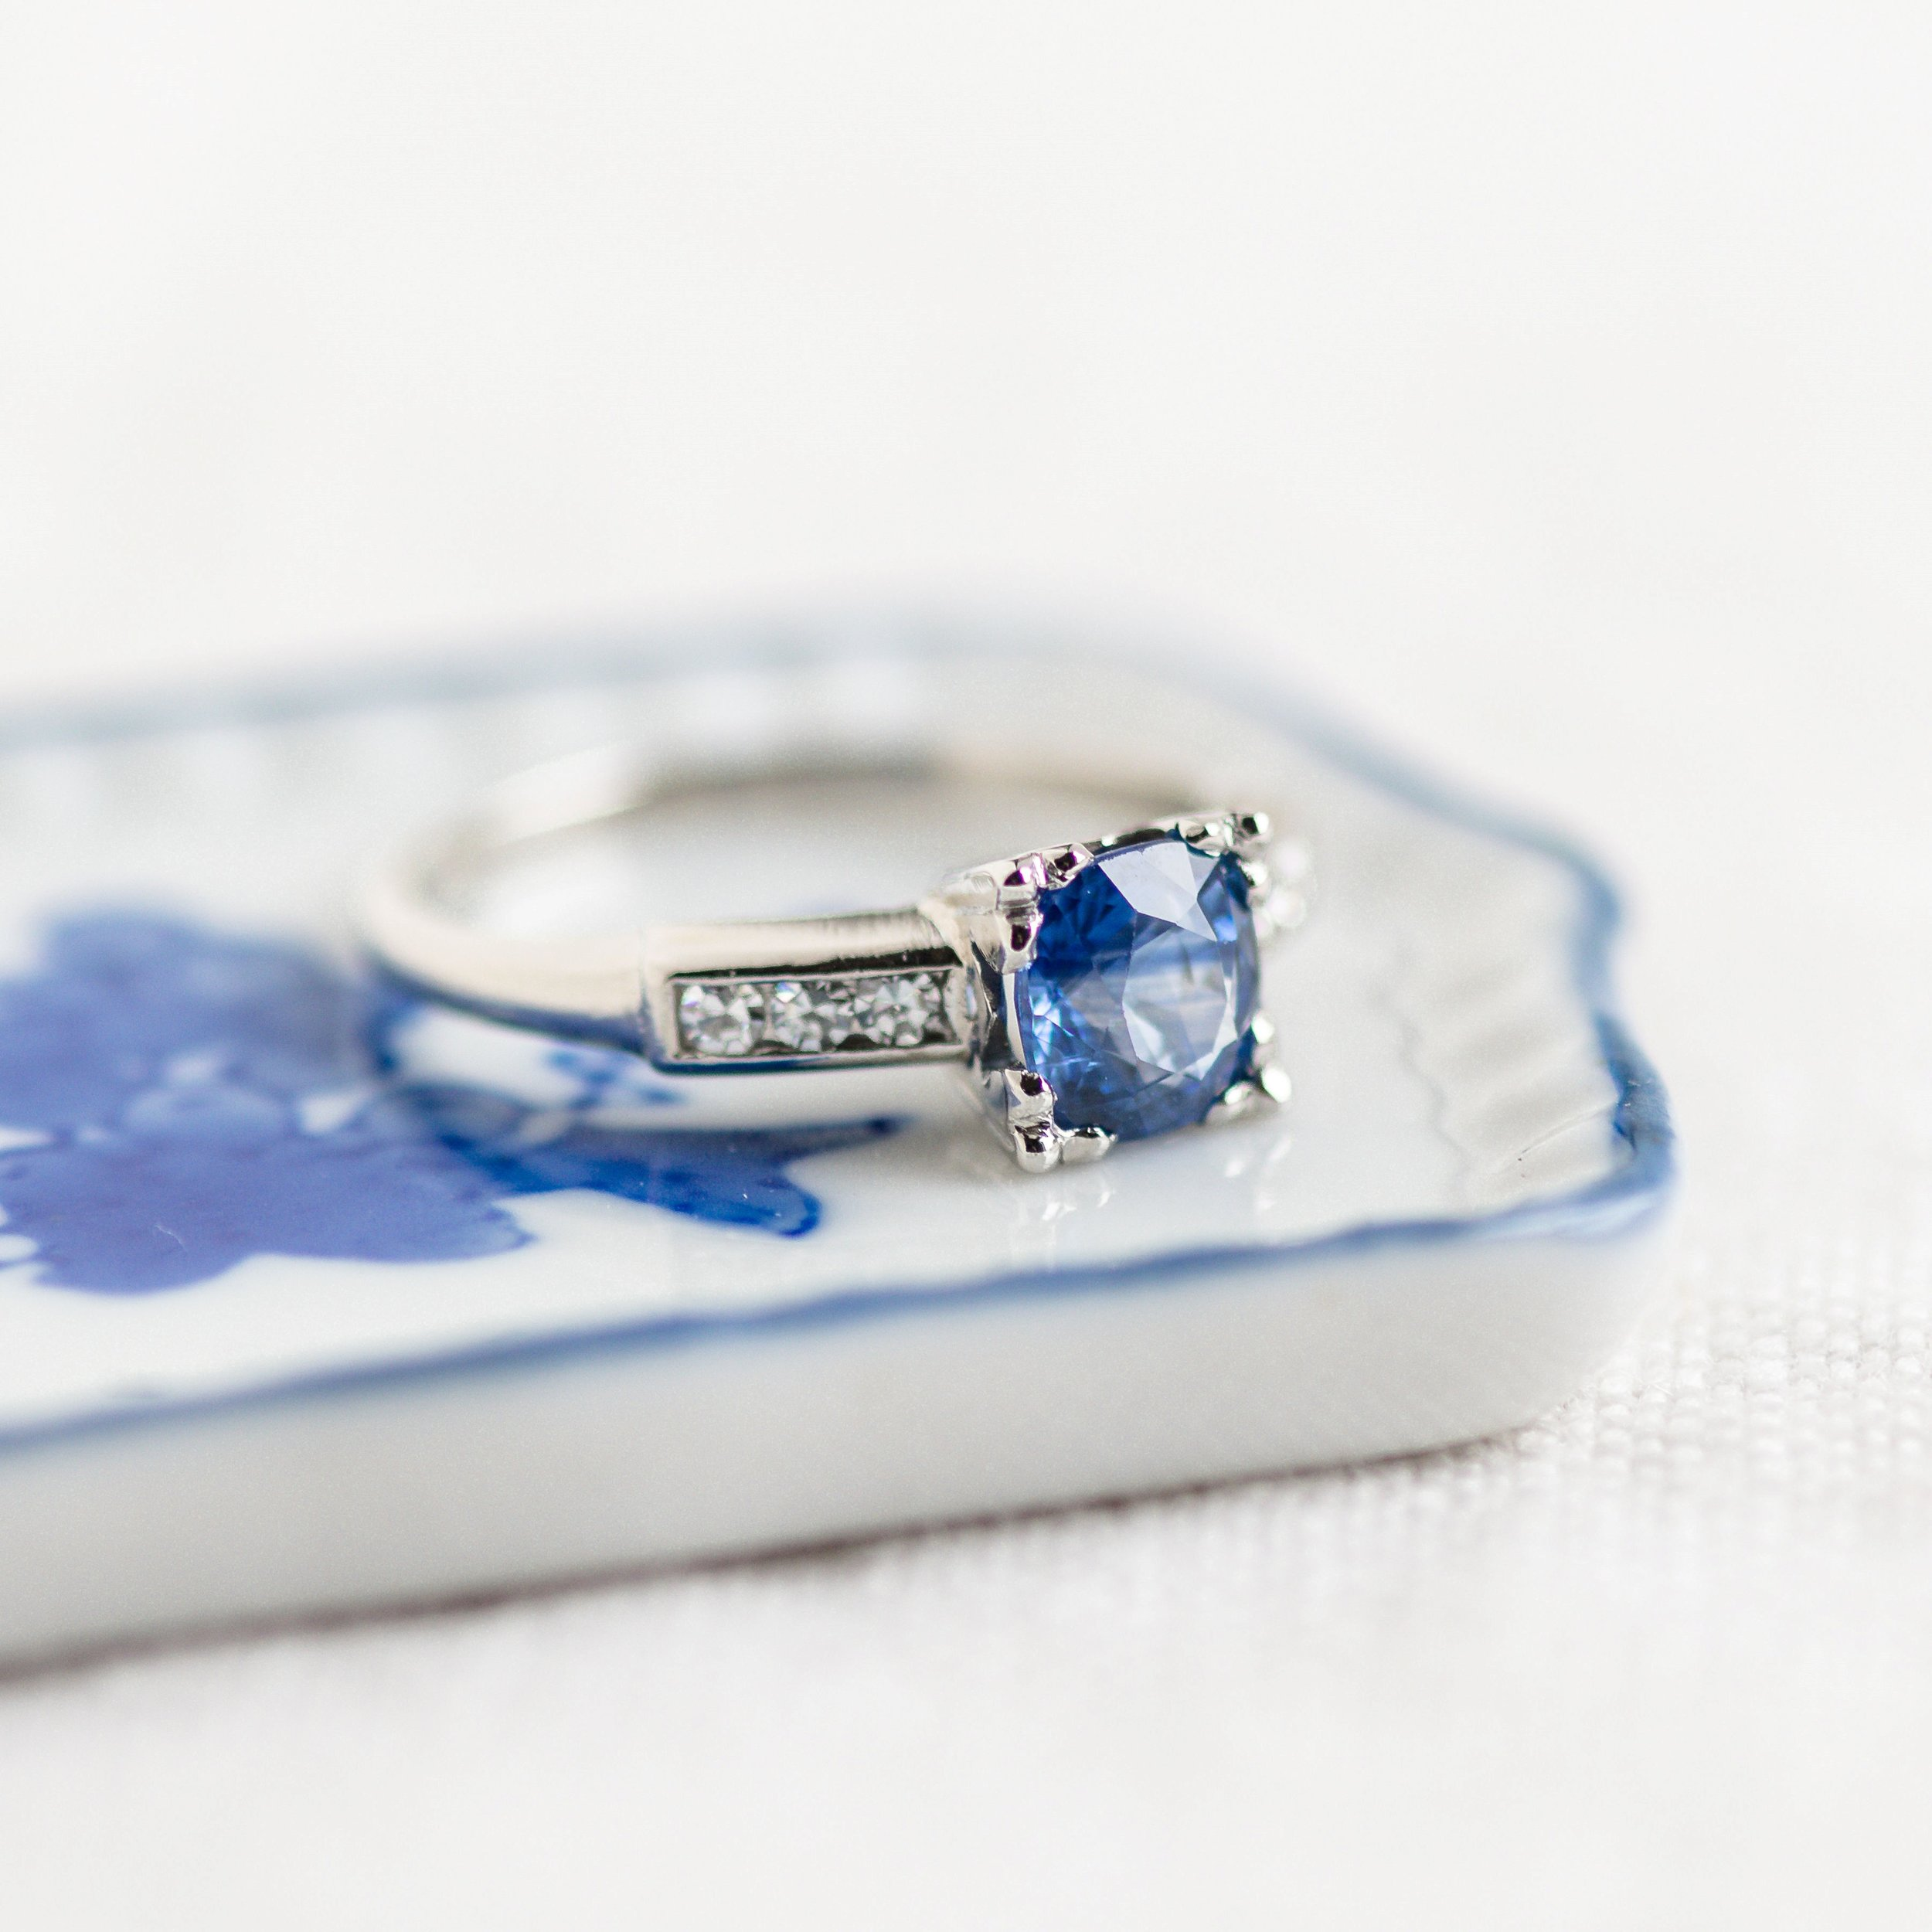 Dreamy blue sapphire and diamond ring. Shop this beauty  HERE .